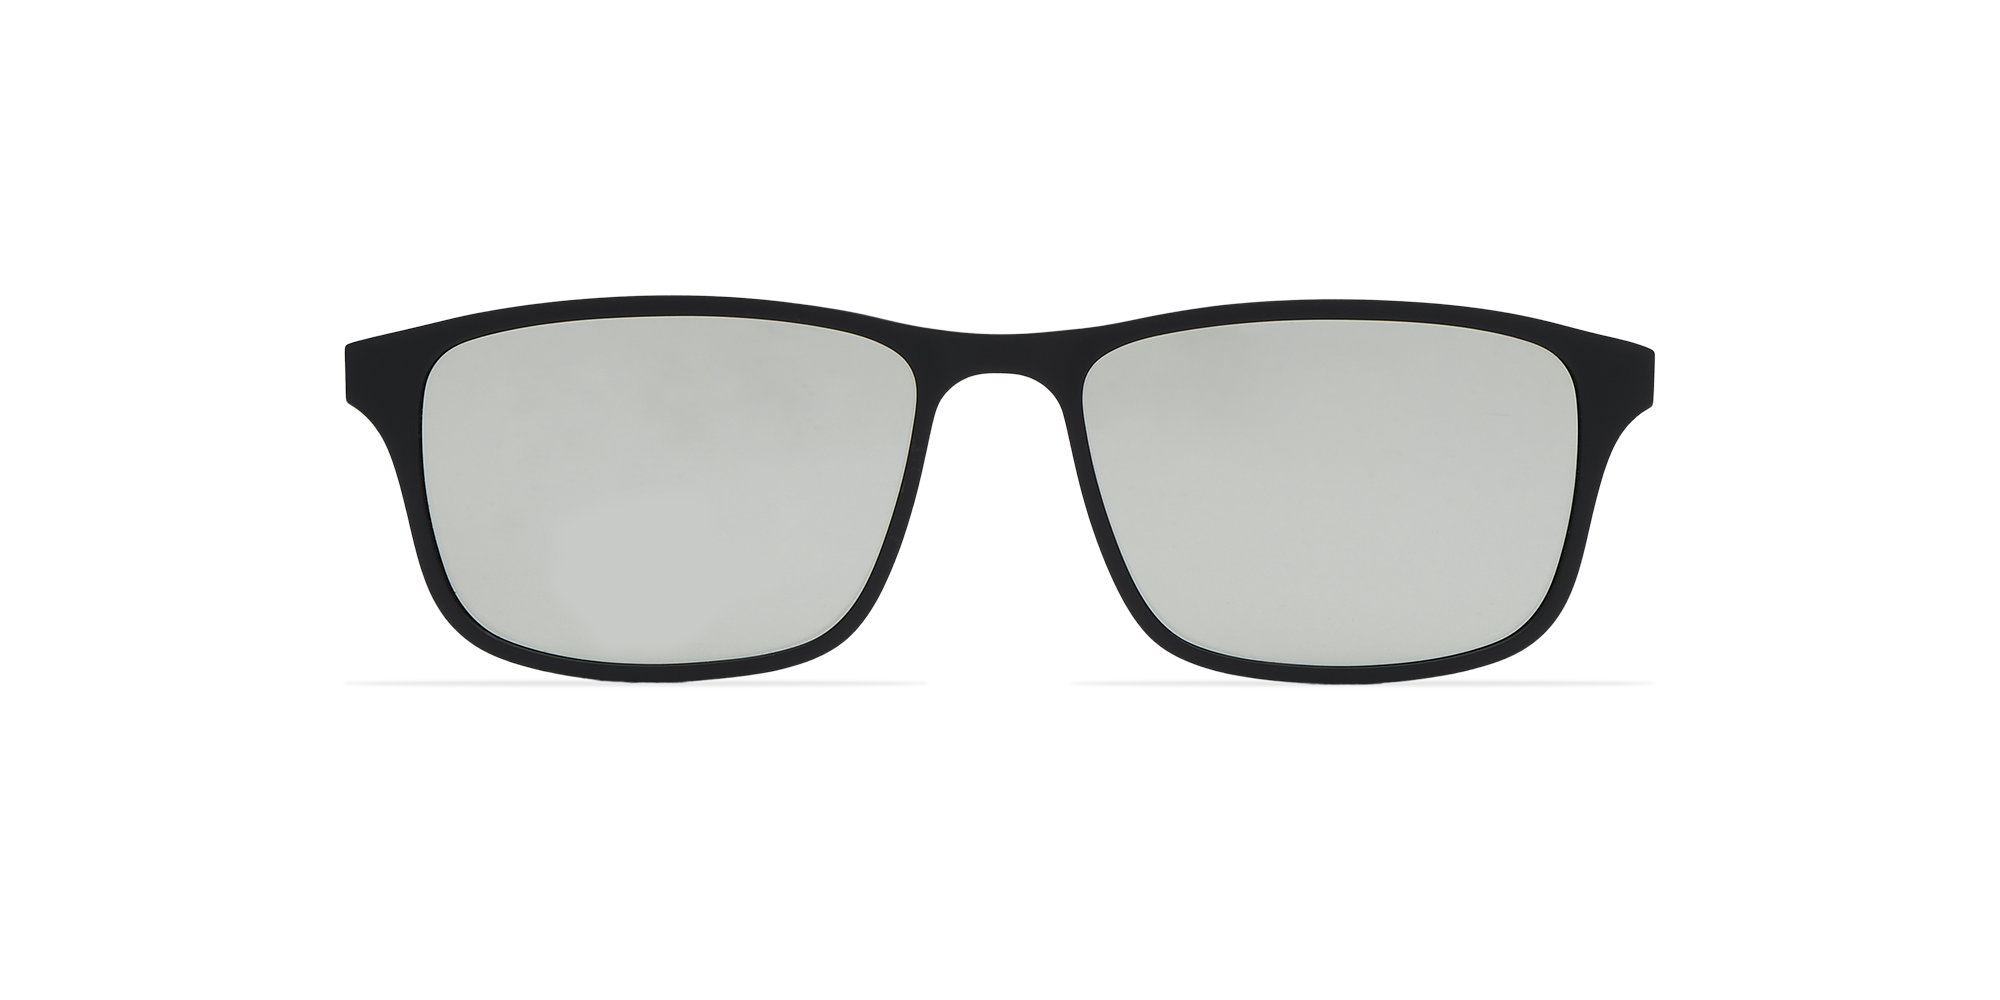 afflelou/france/products/smart_clip/clips_glasses/TMK41R3BK015416.png